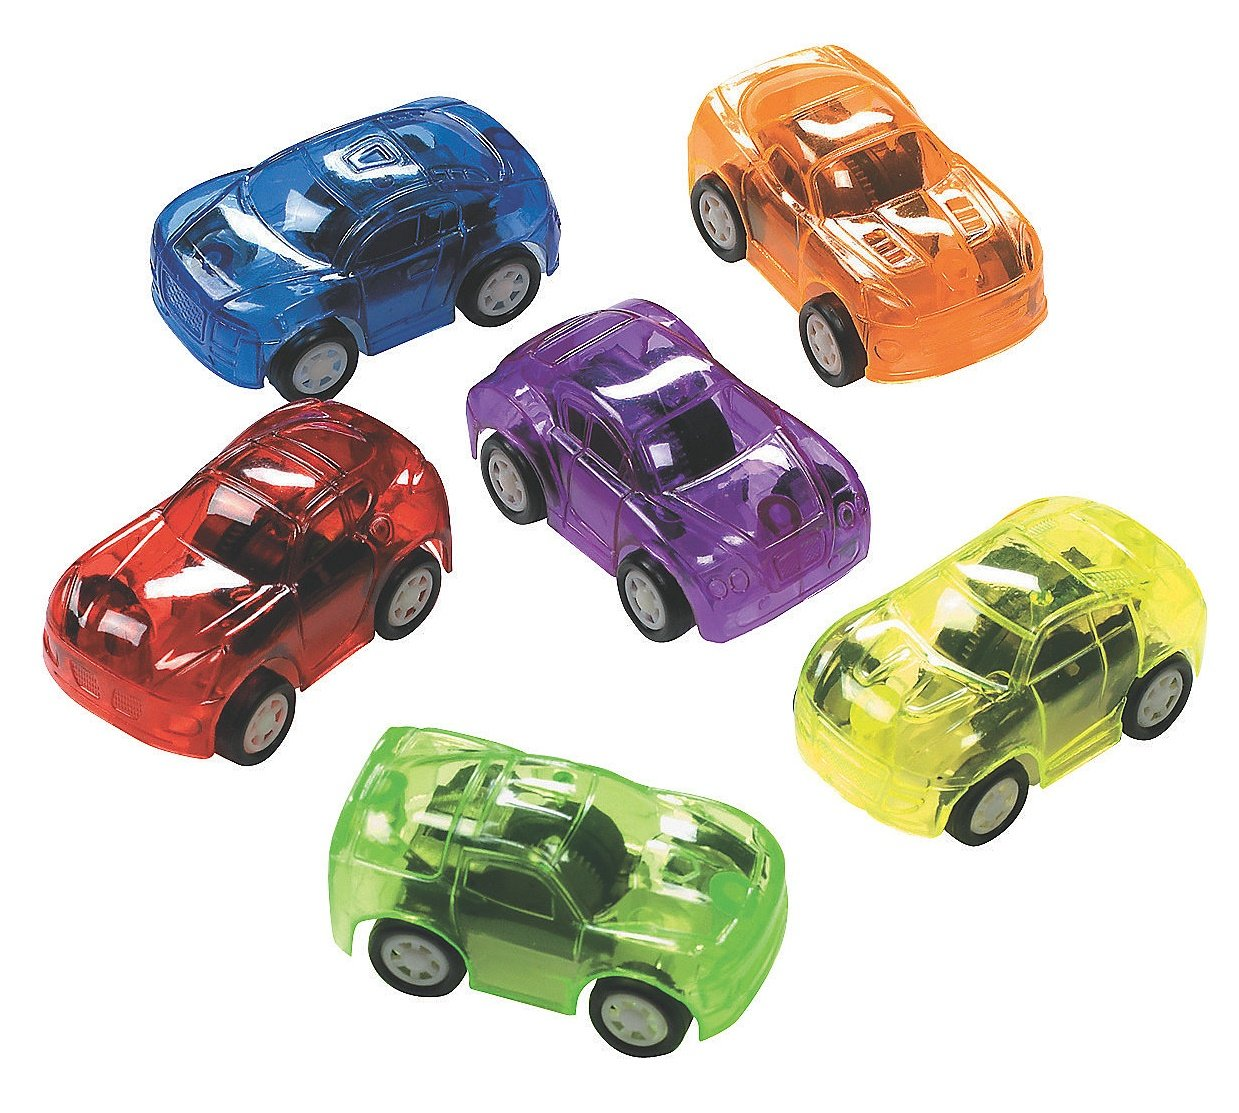 Amazon.com: 12 Plastic Transparent Pull Back Toy Cars: Toys & Games